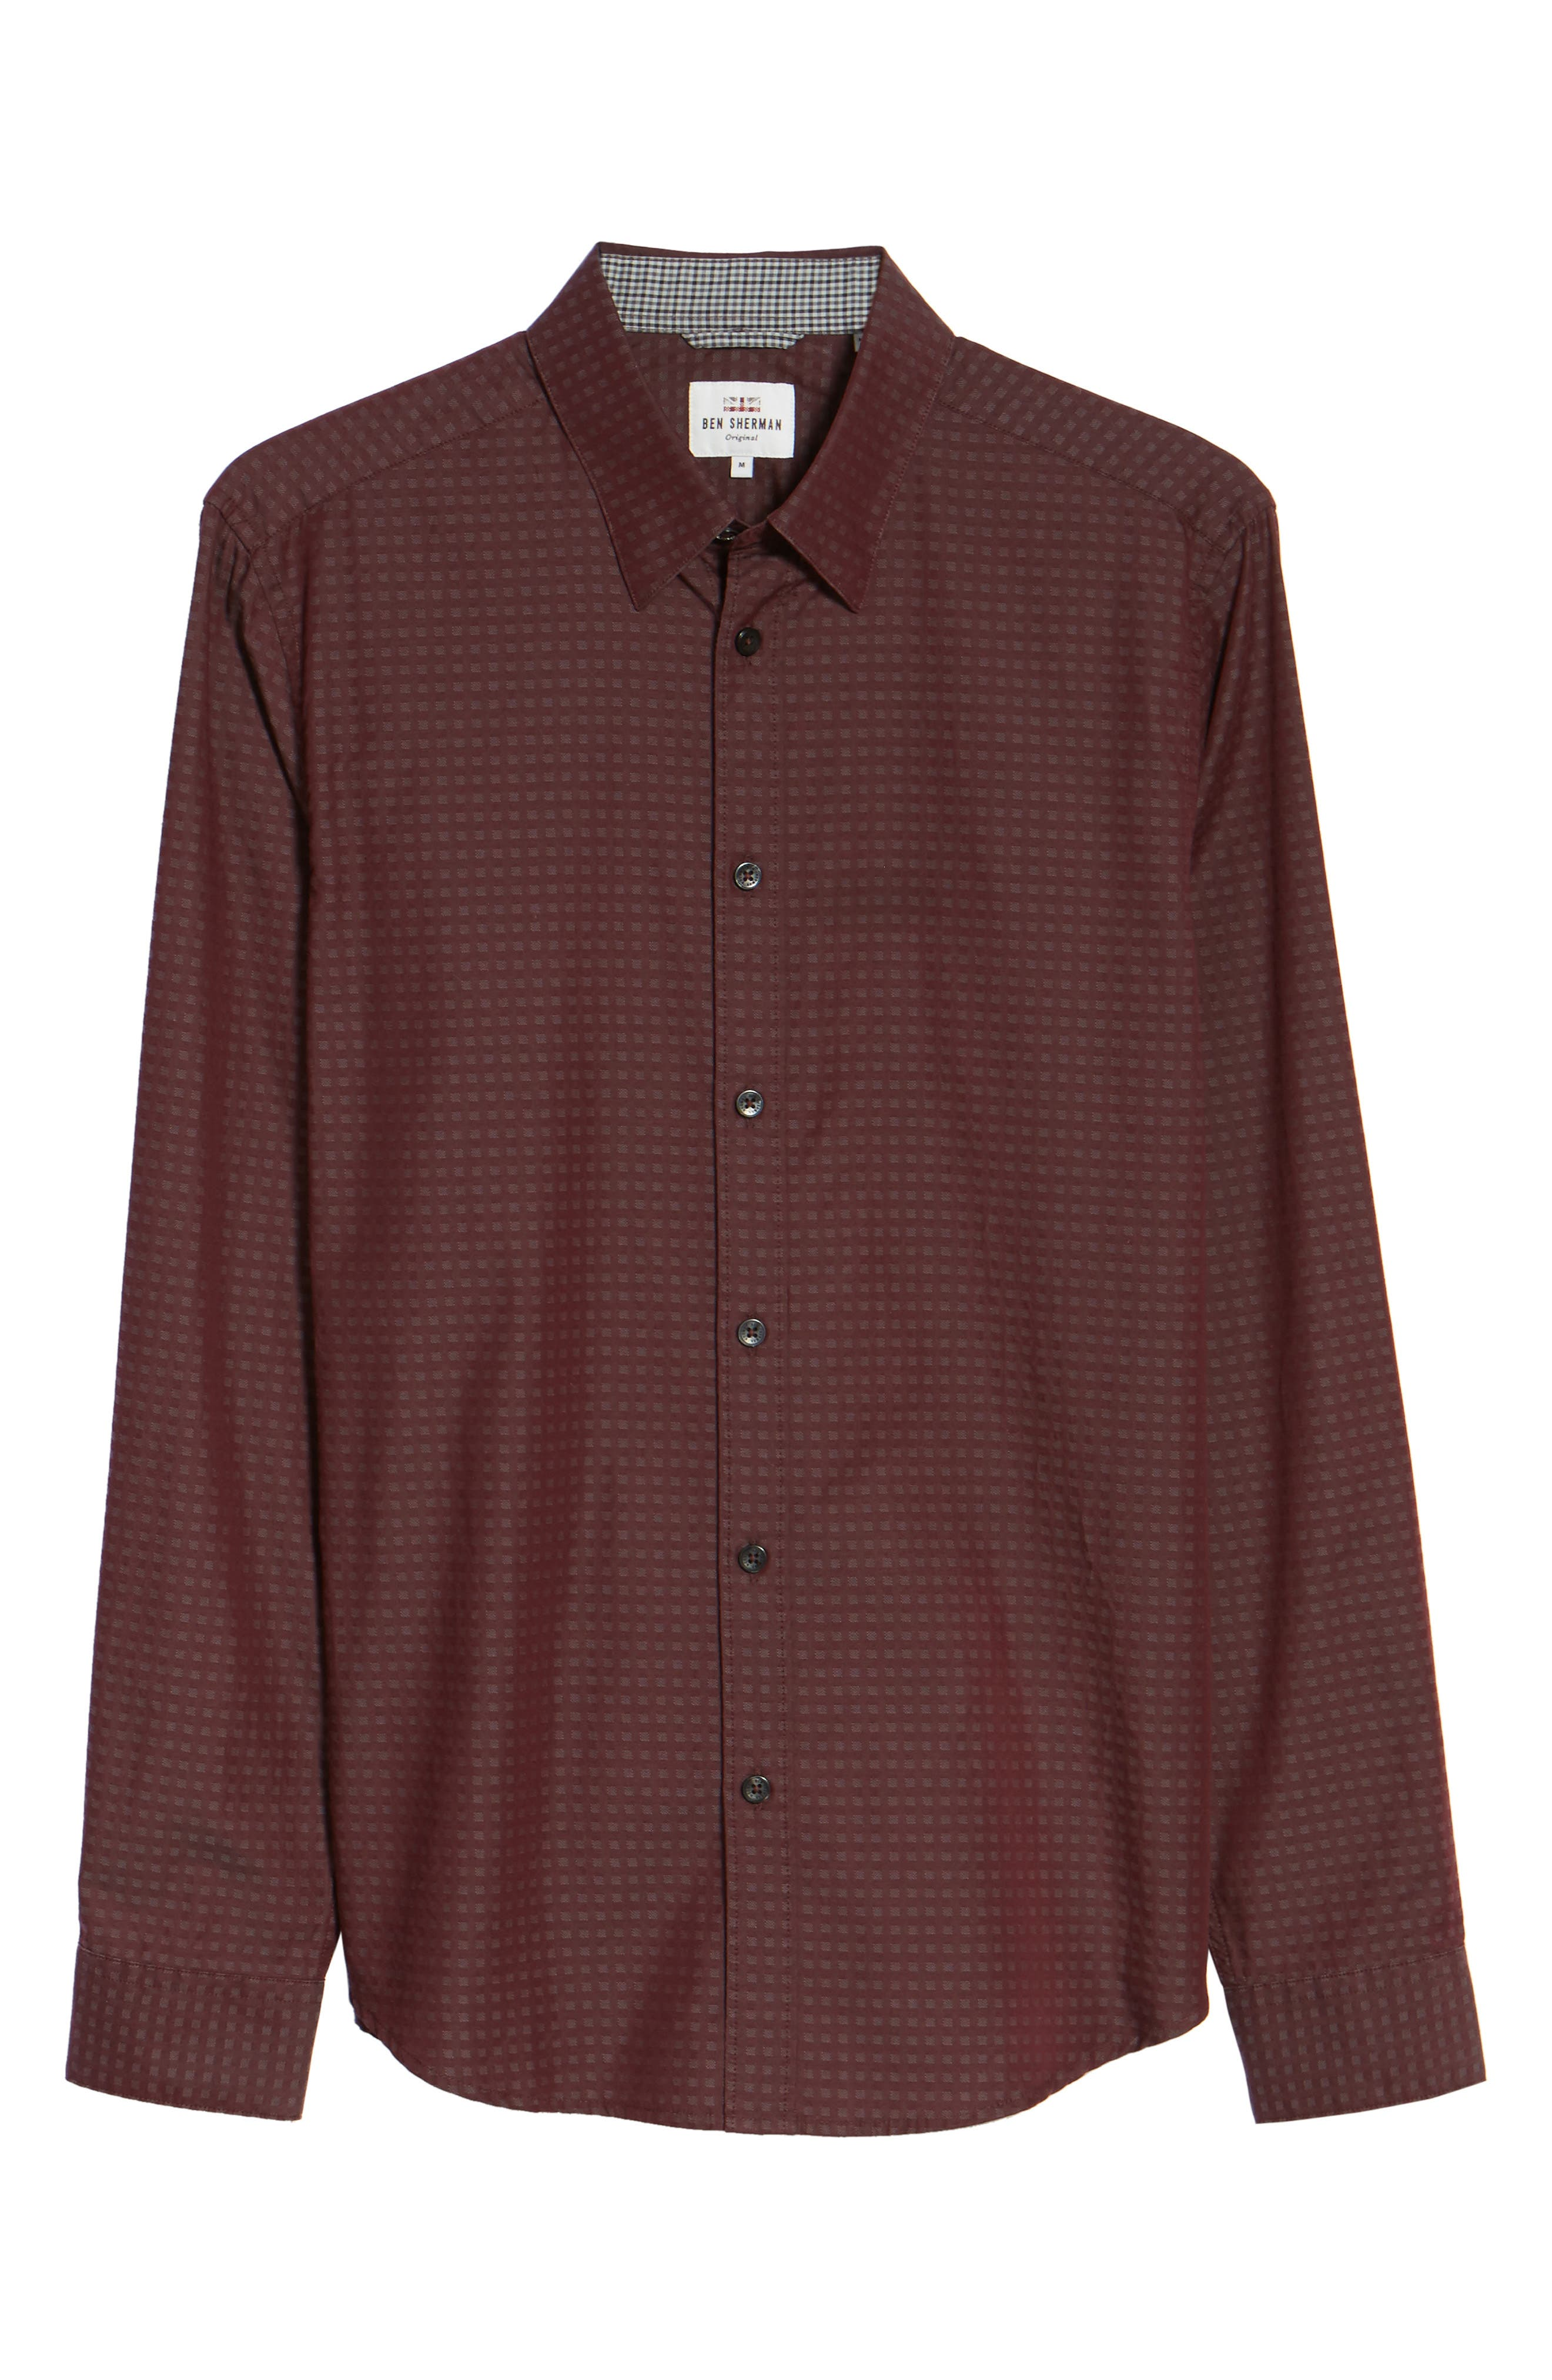 Dobby Checkerboard Woven Shirt,                             Alternate thumbnail 6, color,                             Grape